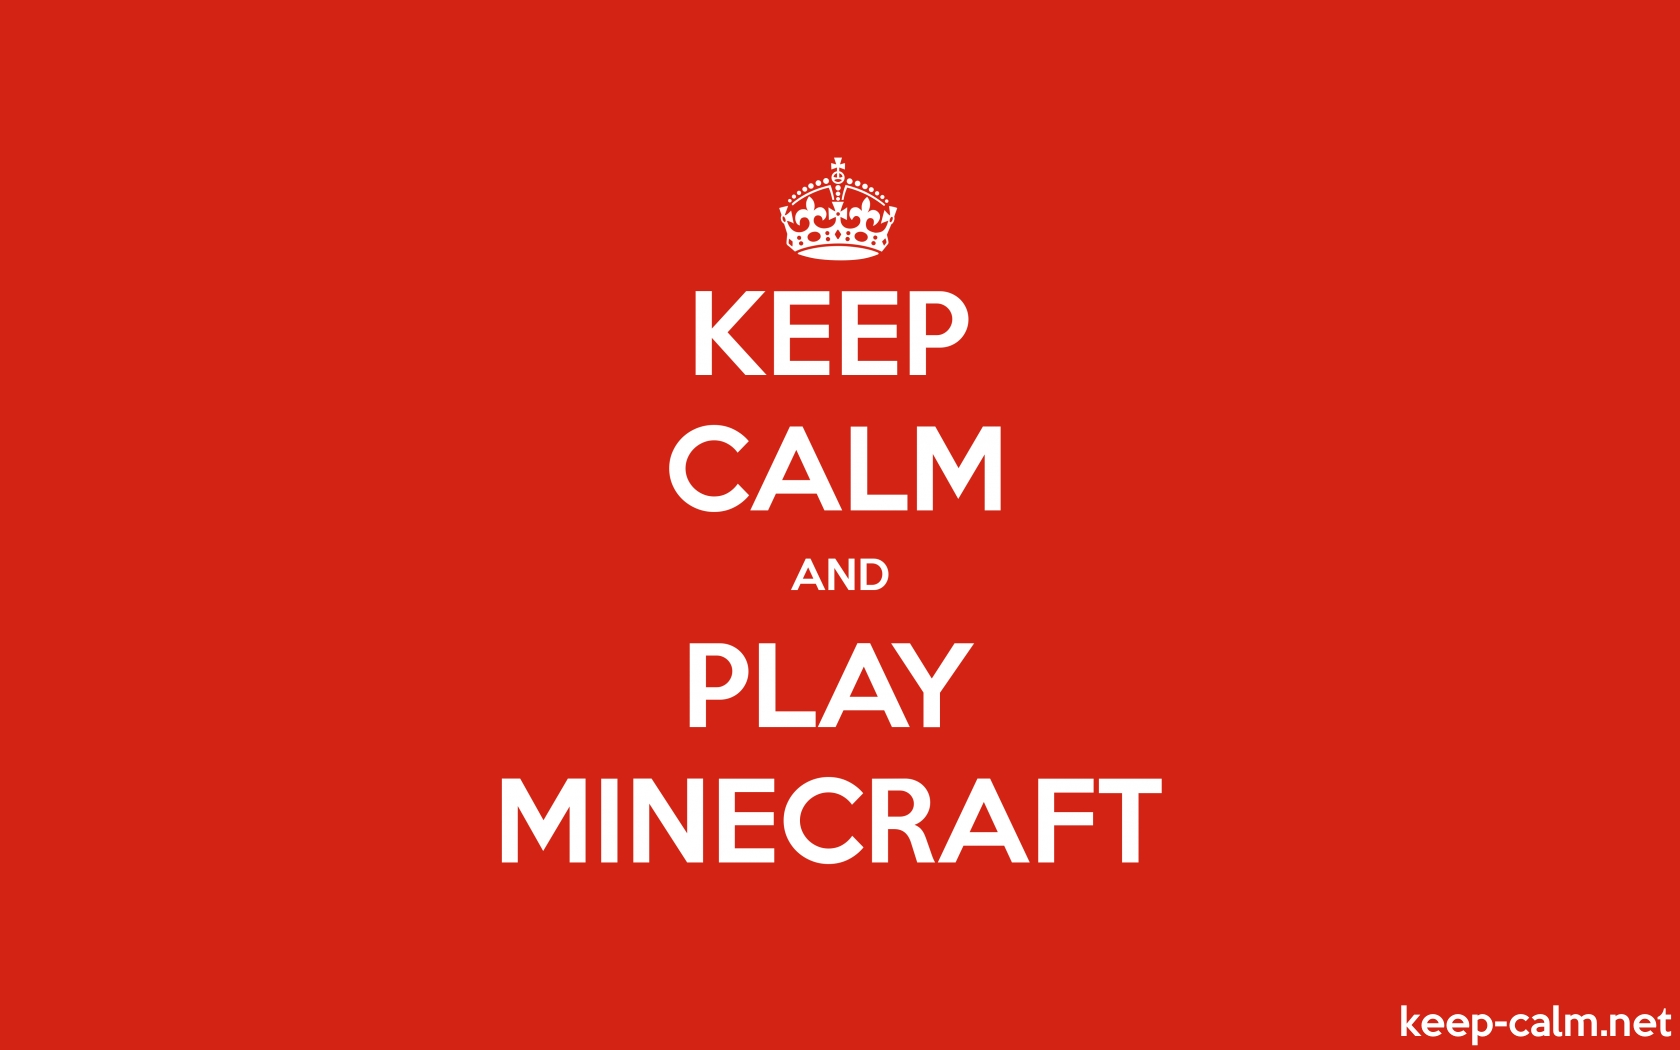 Wonderful Wallpaper Minecraft Red - keep-calm-and-play-minecraft-1680-1050  You Should Have_689557.jpg